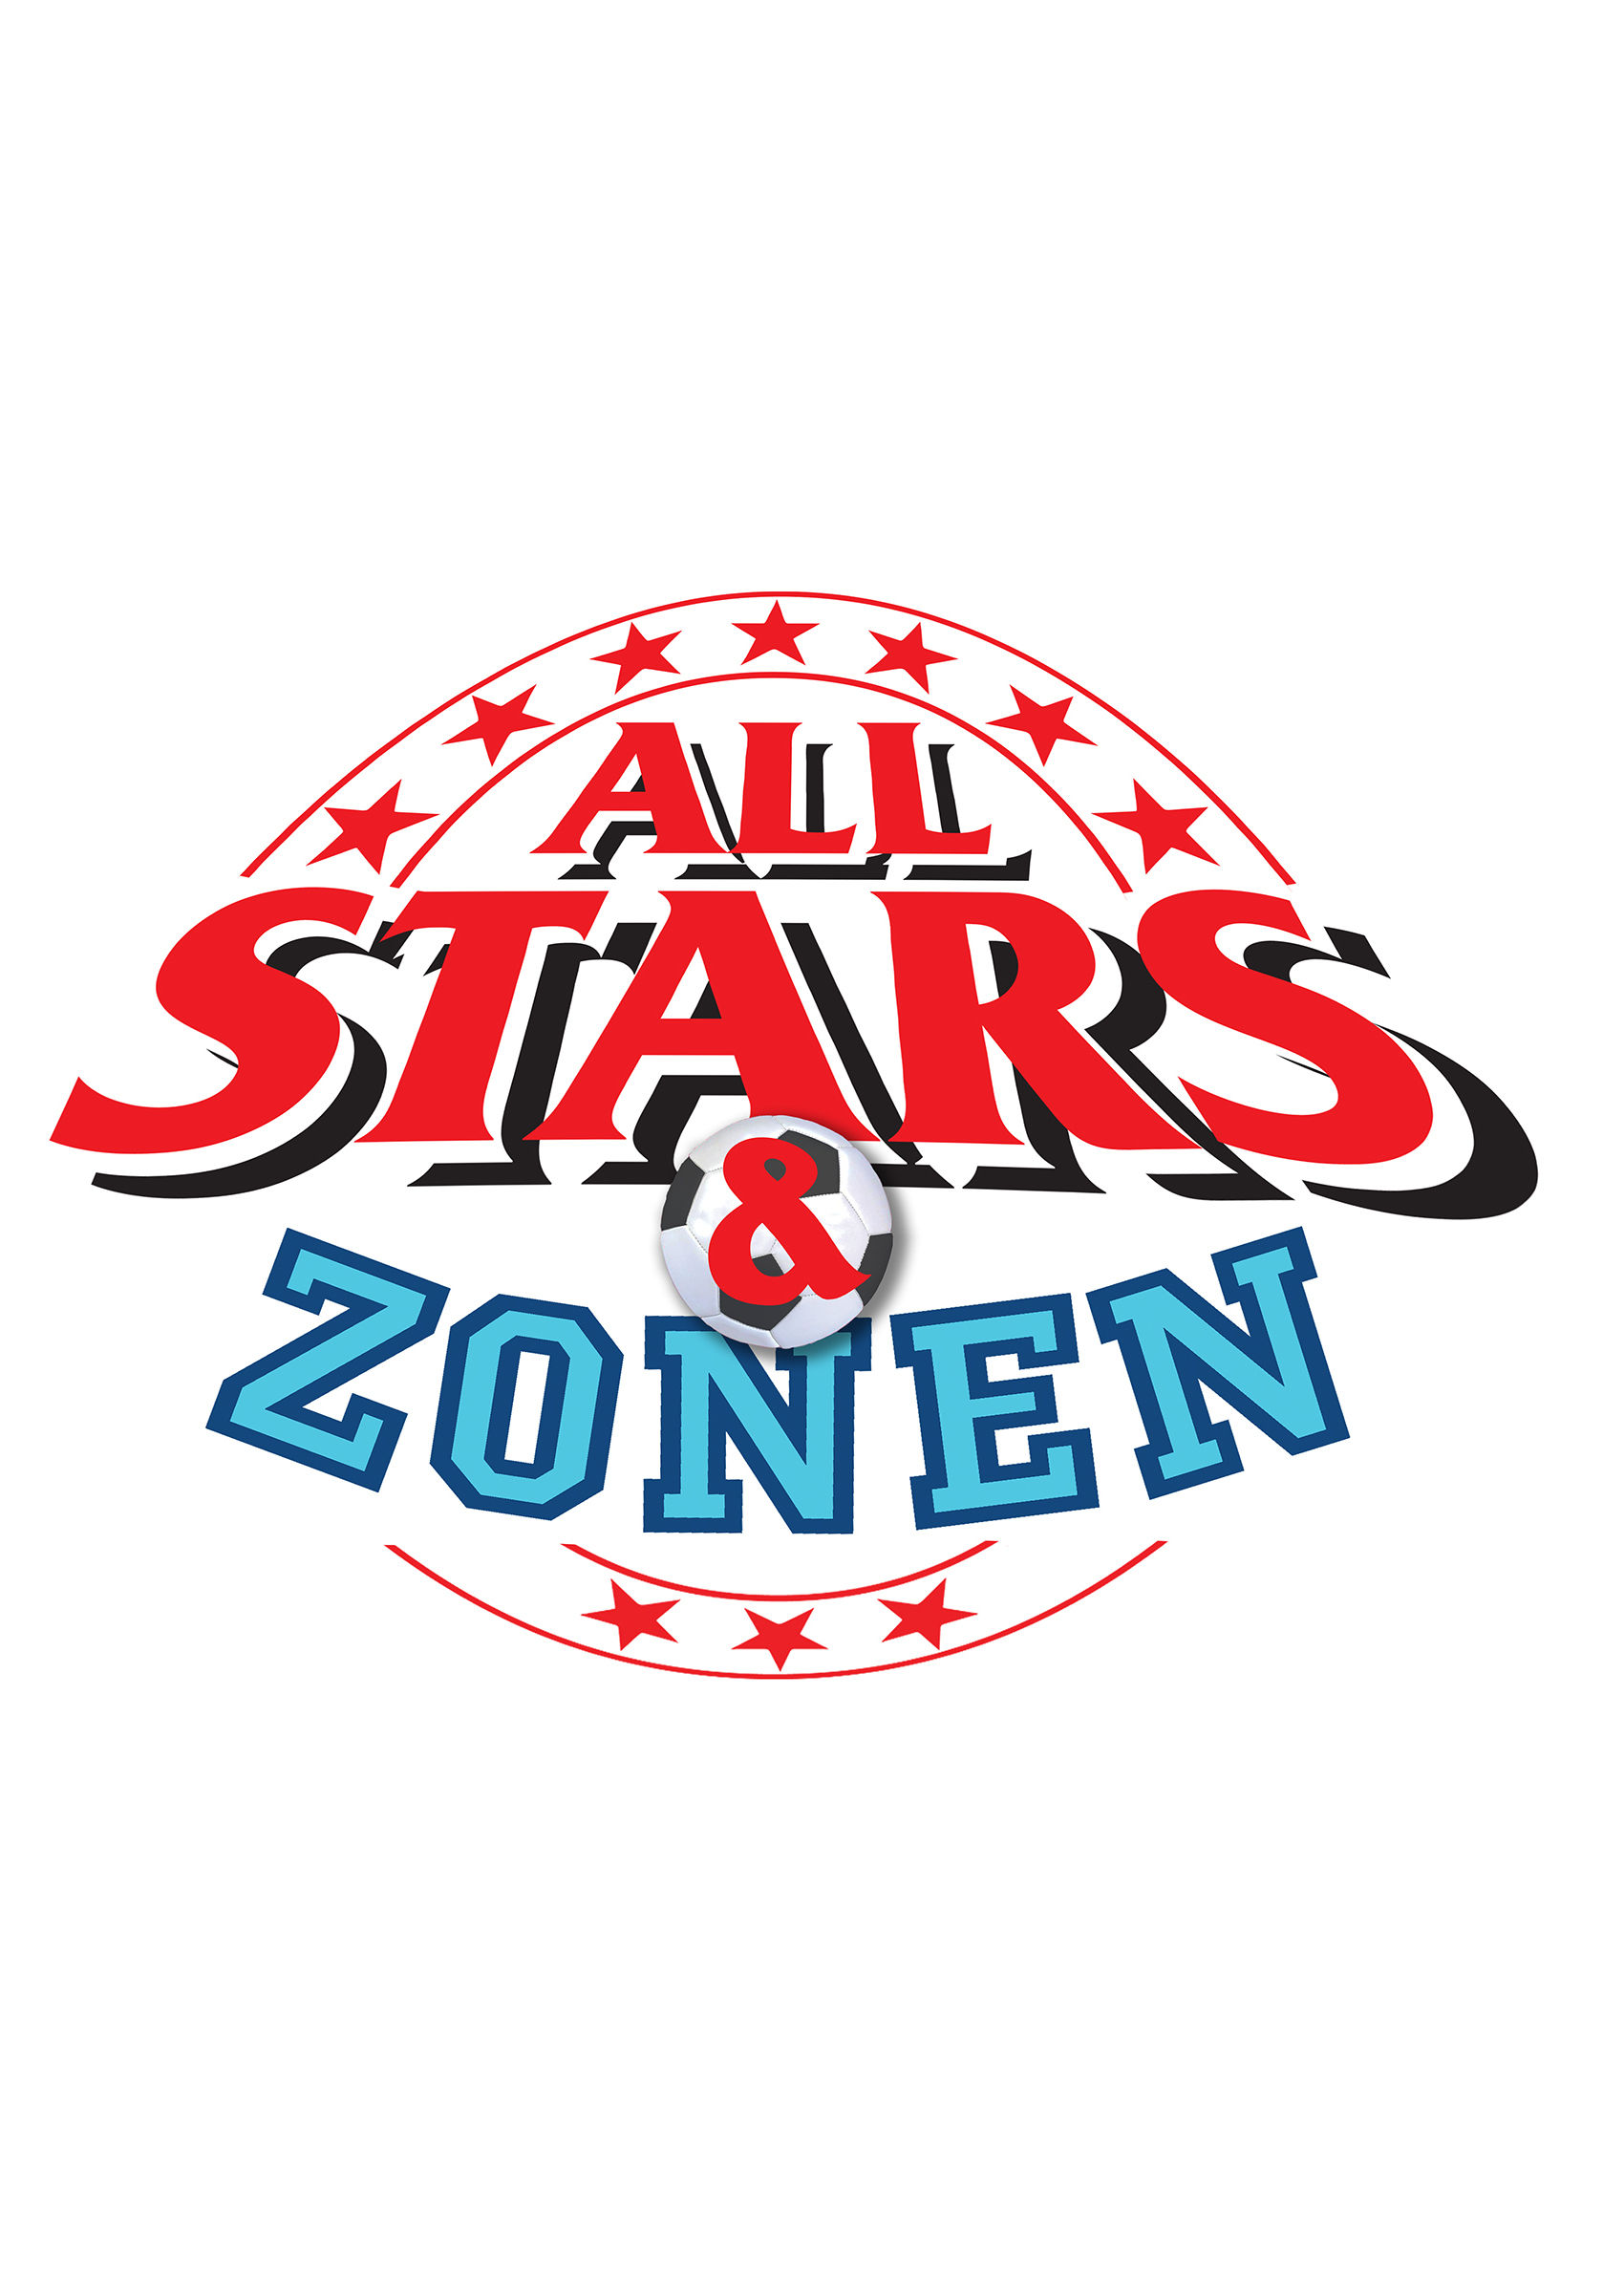 All Stars & Zonen ne zaman